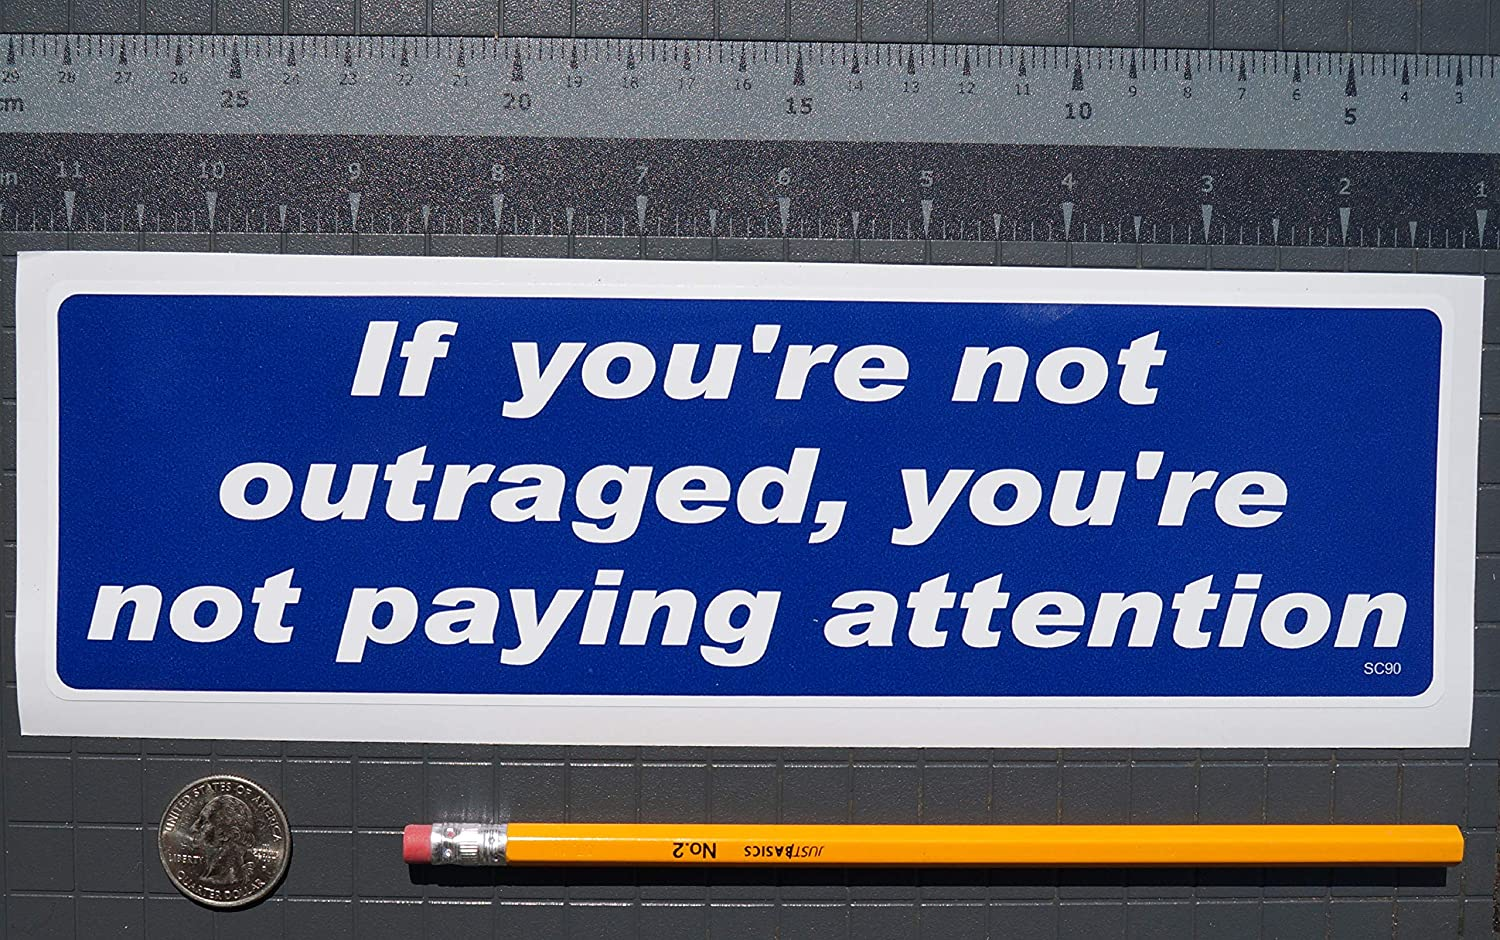 Youre NOT PAYING Attention New Bumper Sticker//Decal Anti Trump for Cars for Trucks Liberal Democrat Political Gear Tatz IF Youre NOT Outraged